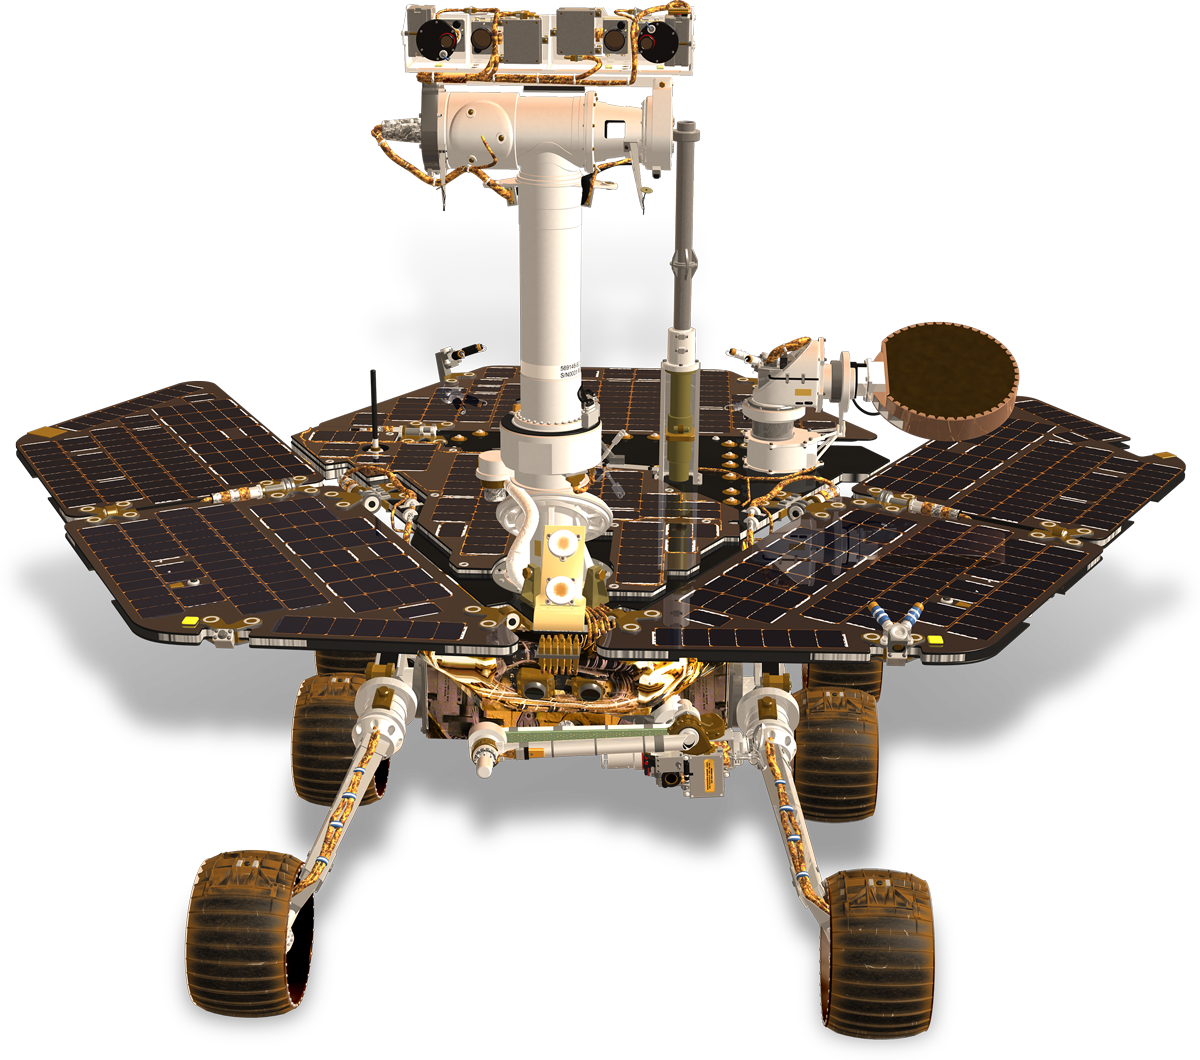 mars rover opportunity status - photo #29